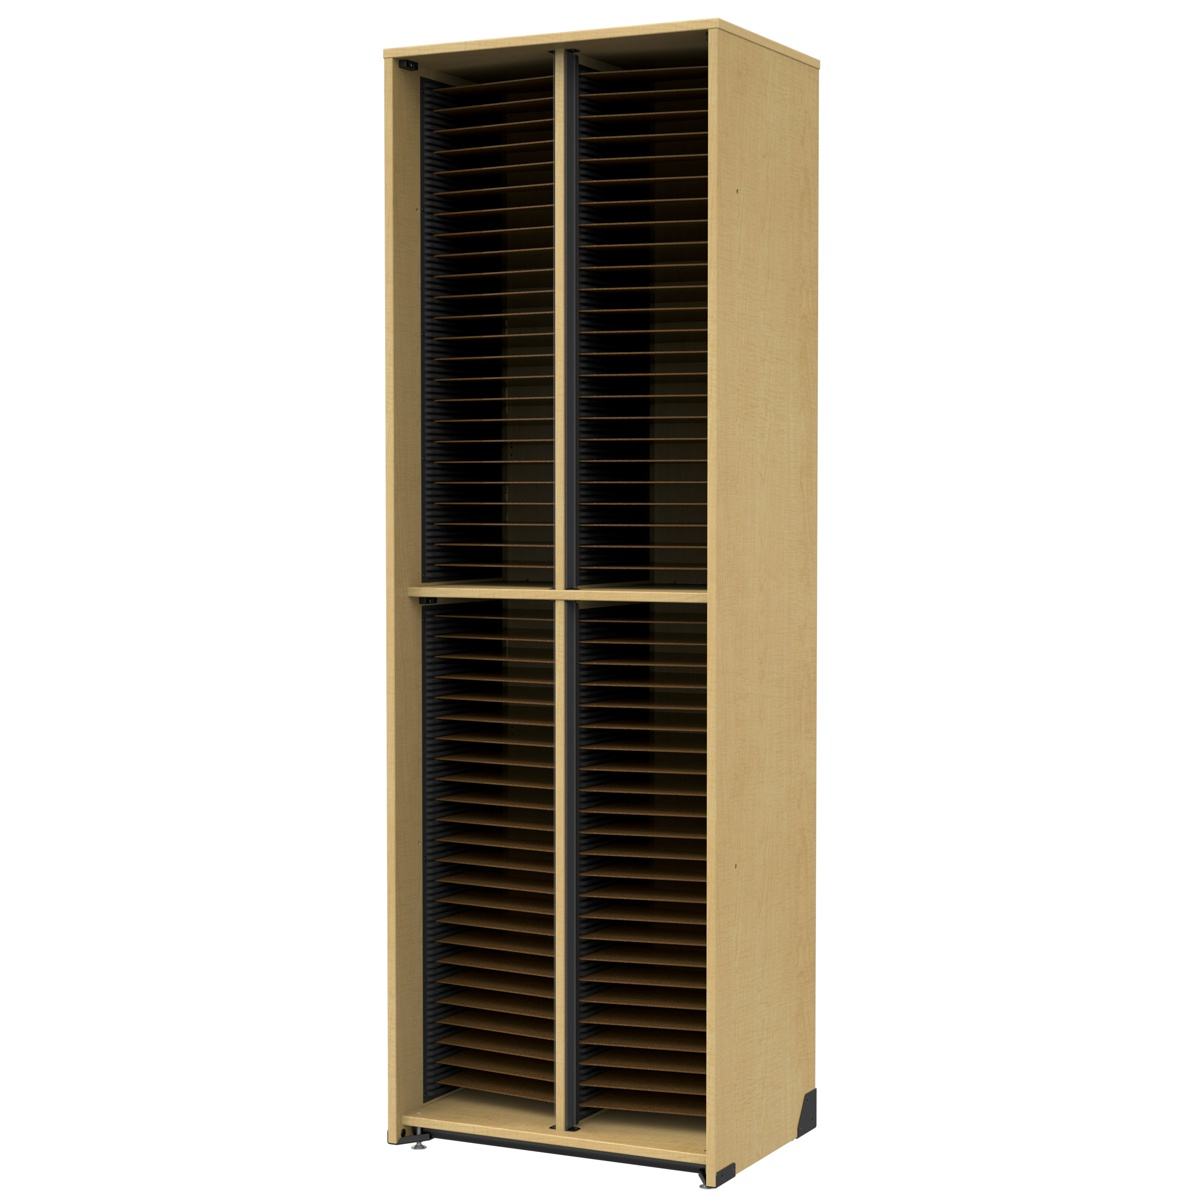 Bs401 Folio Cabinet Marco Group Inc